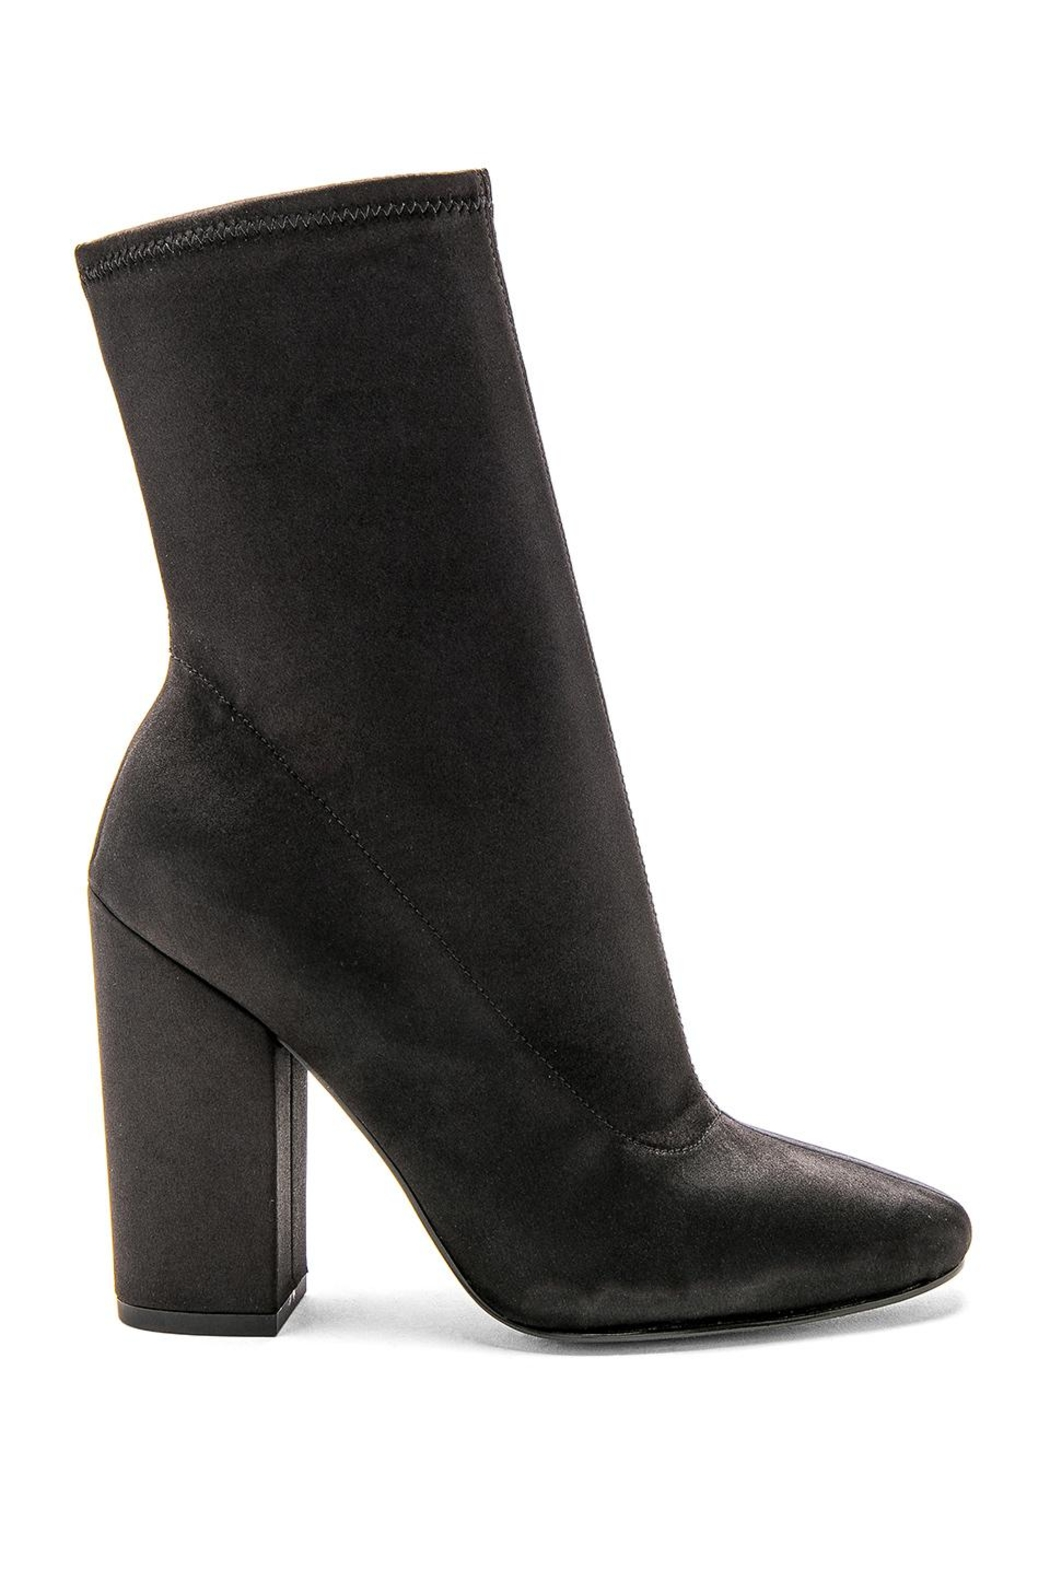 Kendall + Kylie Hailey Bootie - Front Full Image